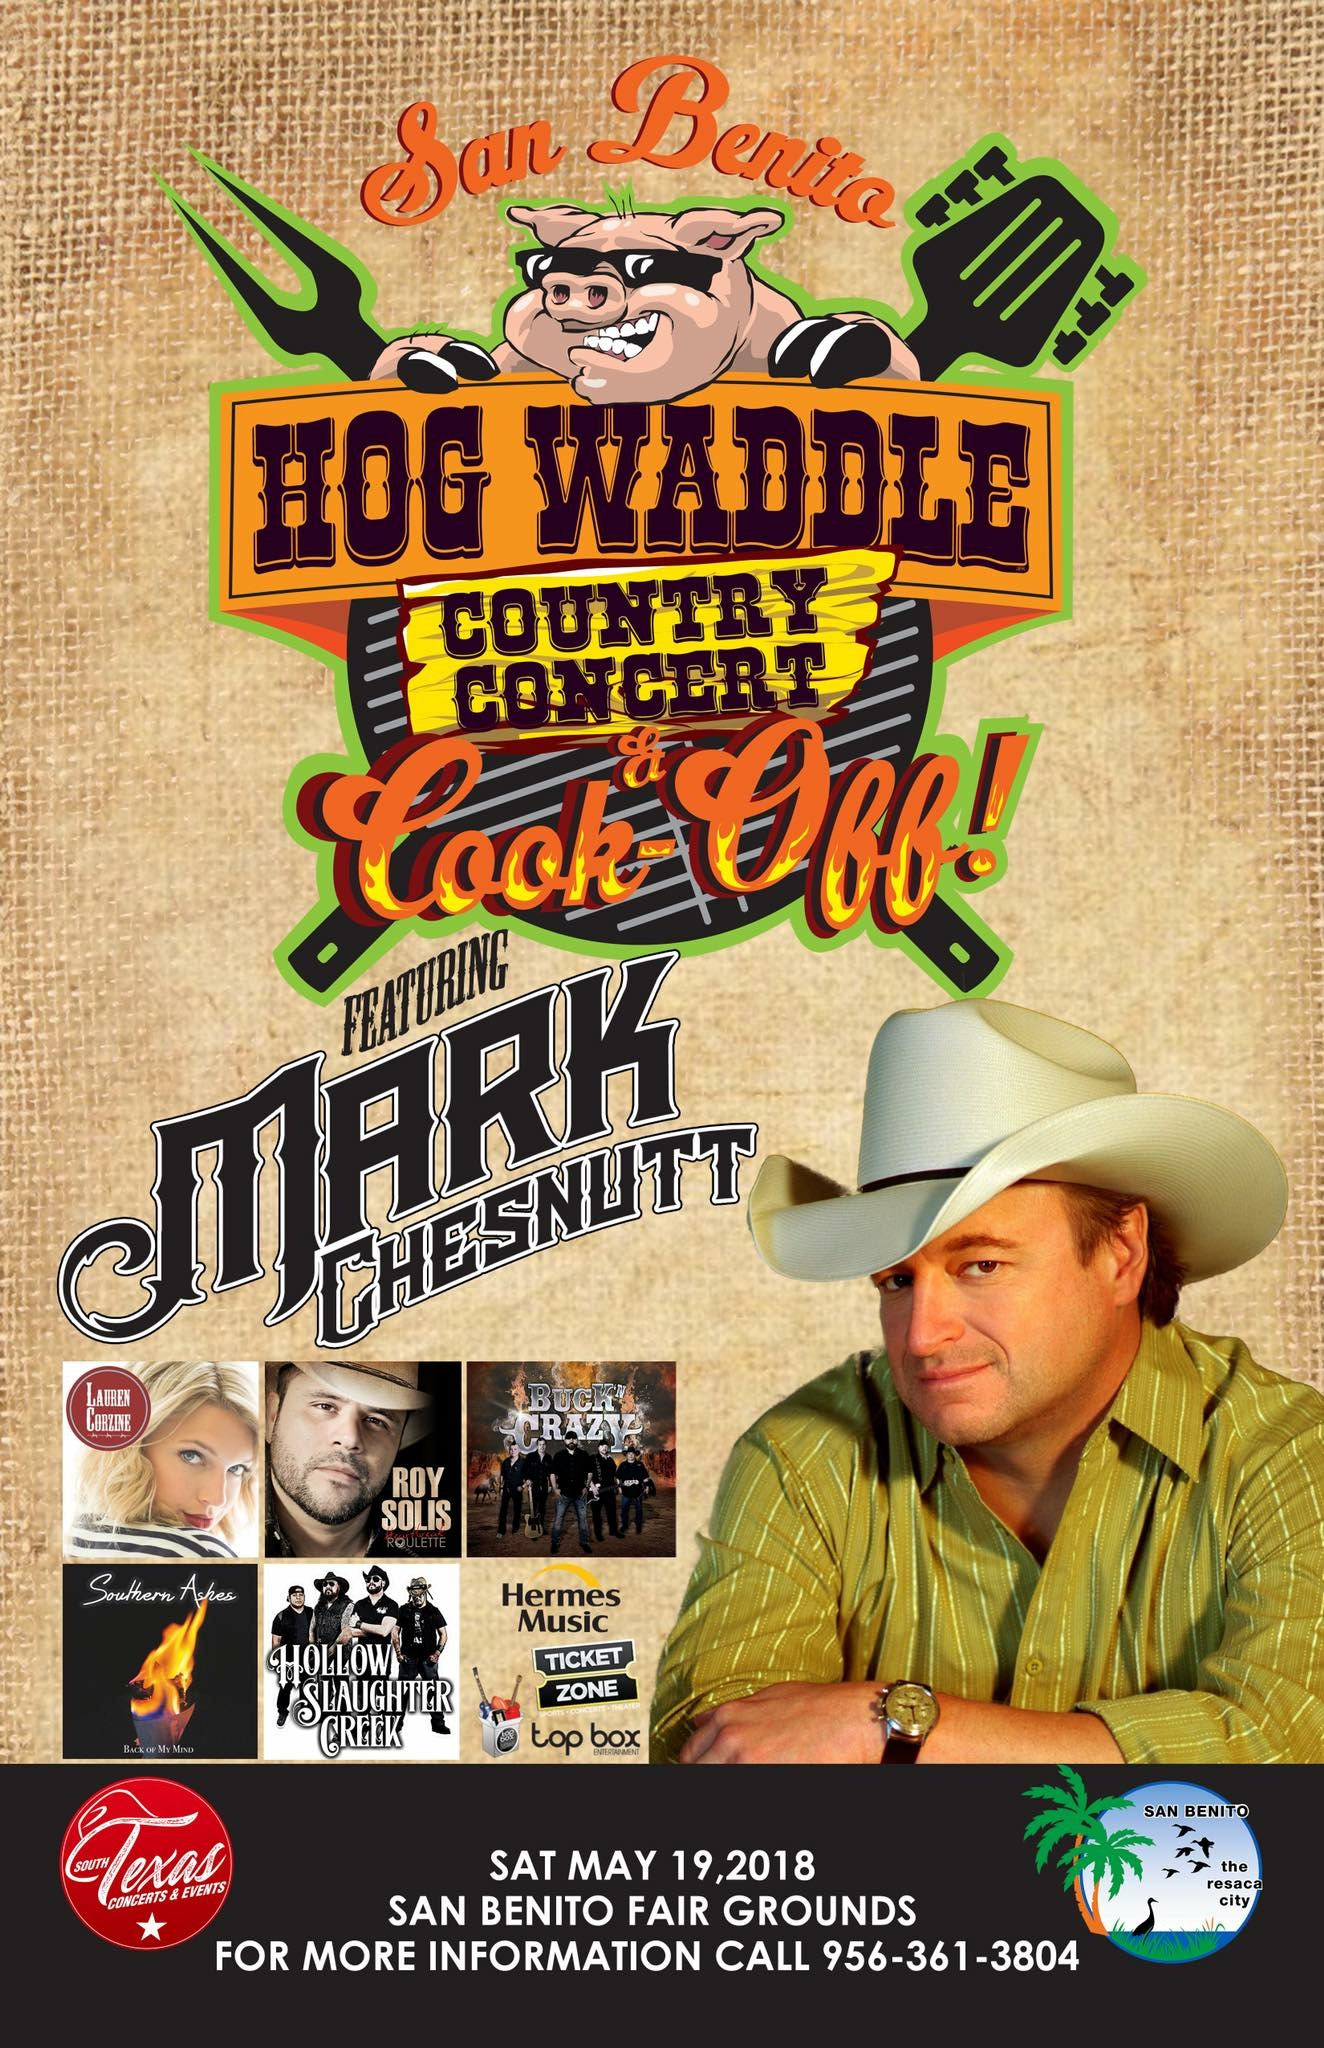 San Benito Hog Waddle; Mark Chestnutt poster